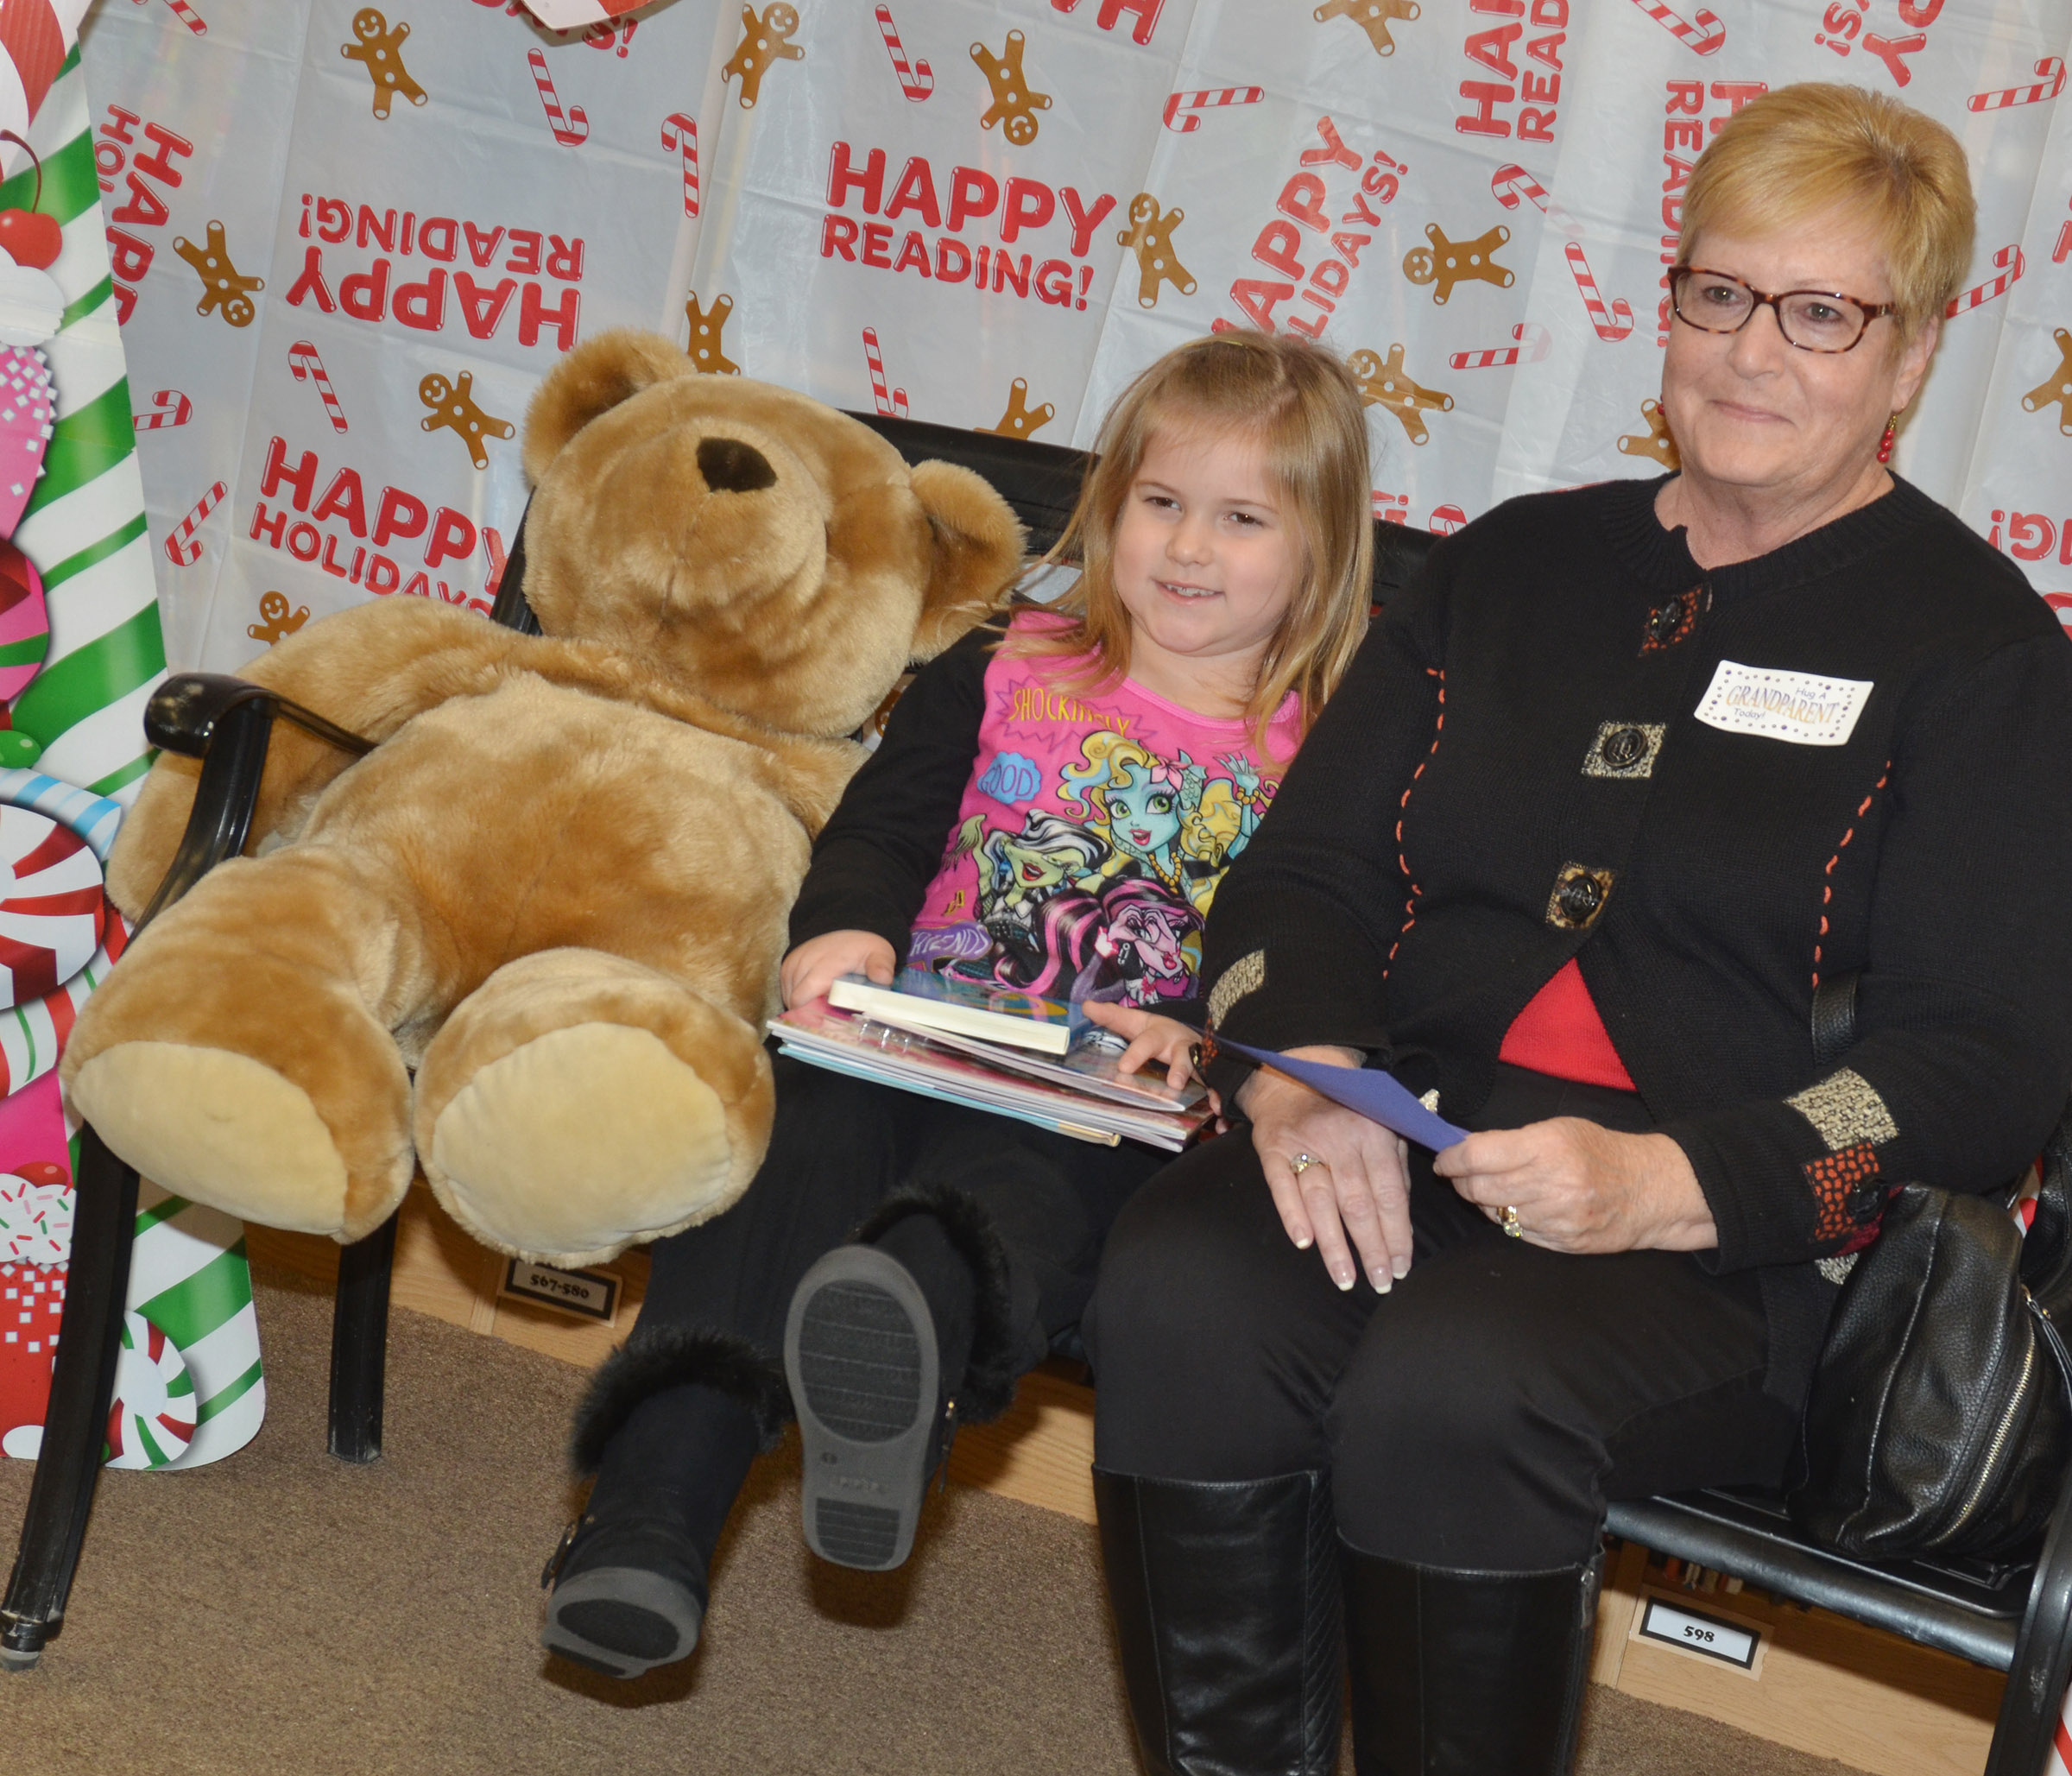 CES kindergartener Aubreigh Knifley poses for a photo with her grandmother, Delaine Knifley.